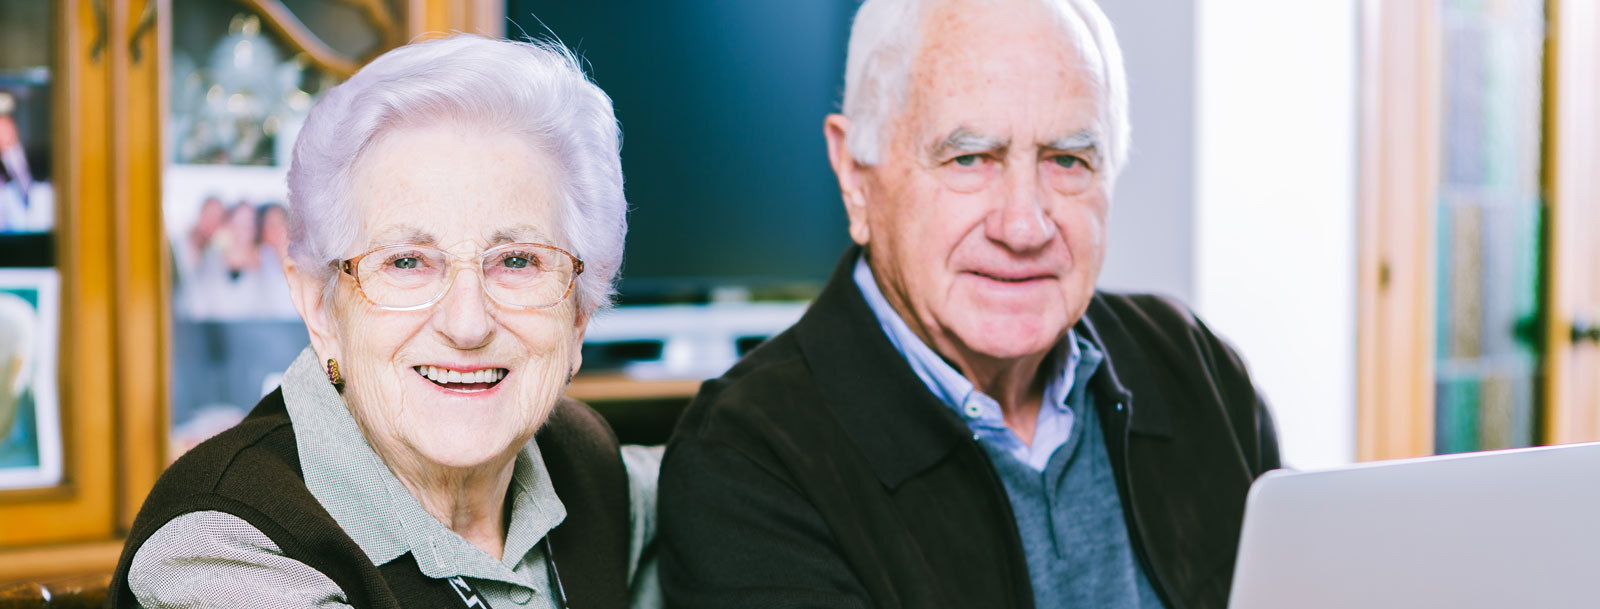 Helpful resources for the senior living facility in Lawrence